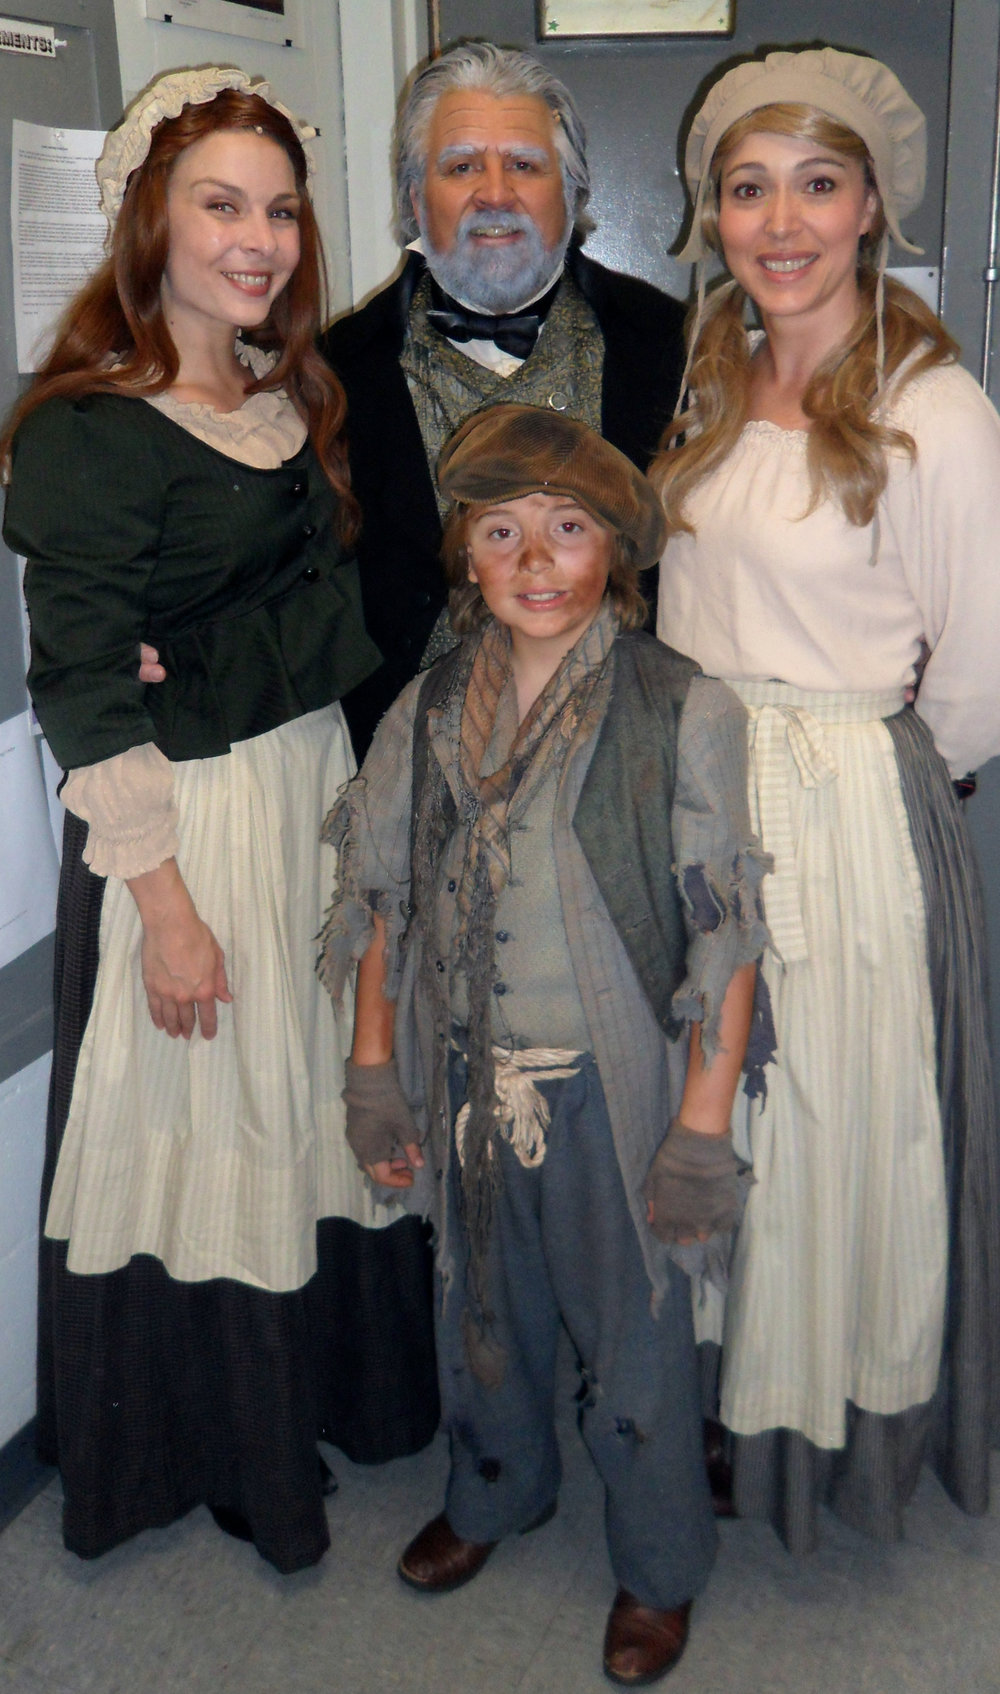 The crazy talented Felty family! David (Jean Valjean), Jen (Ensemble), & Noah (Gavroche).